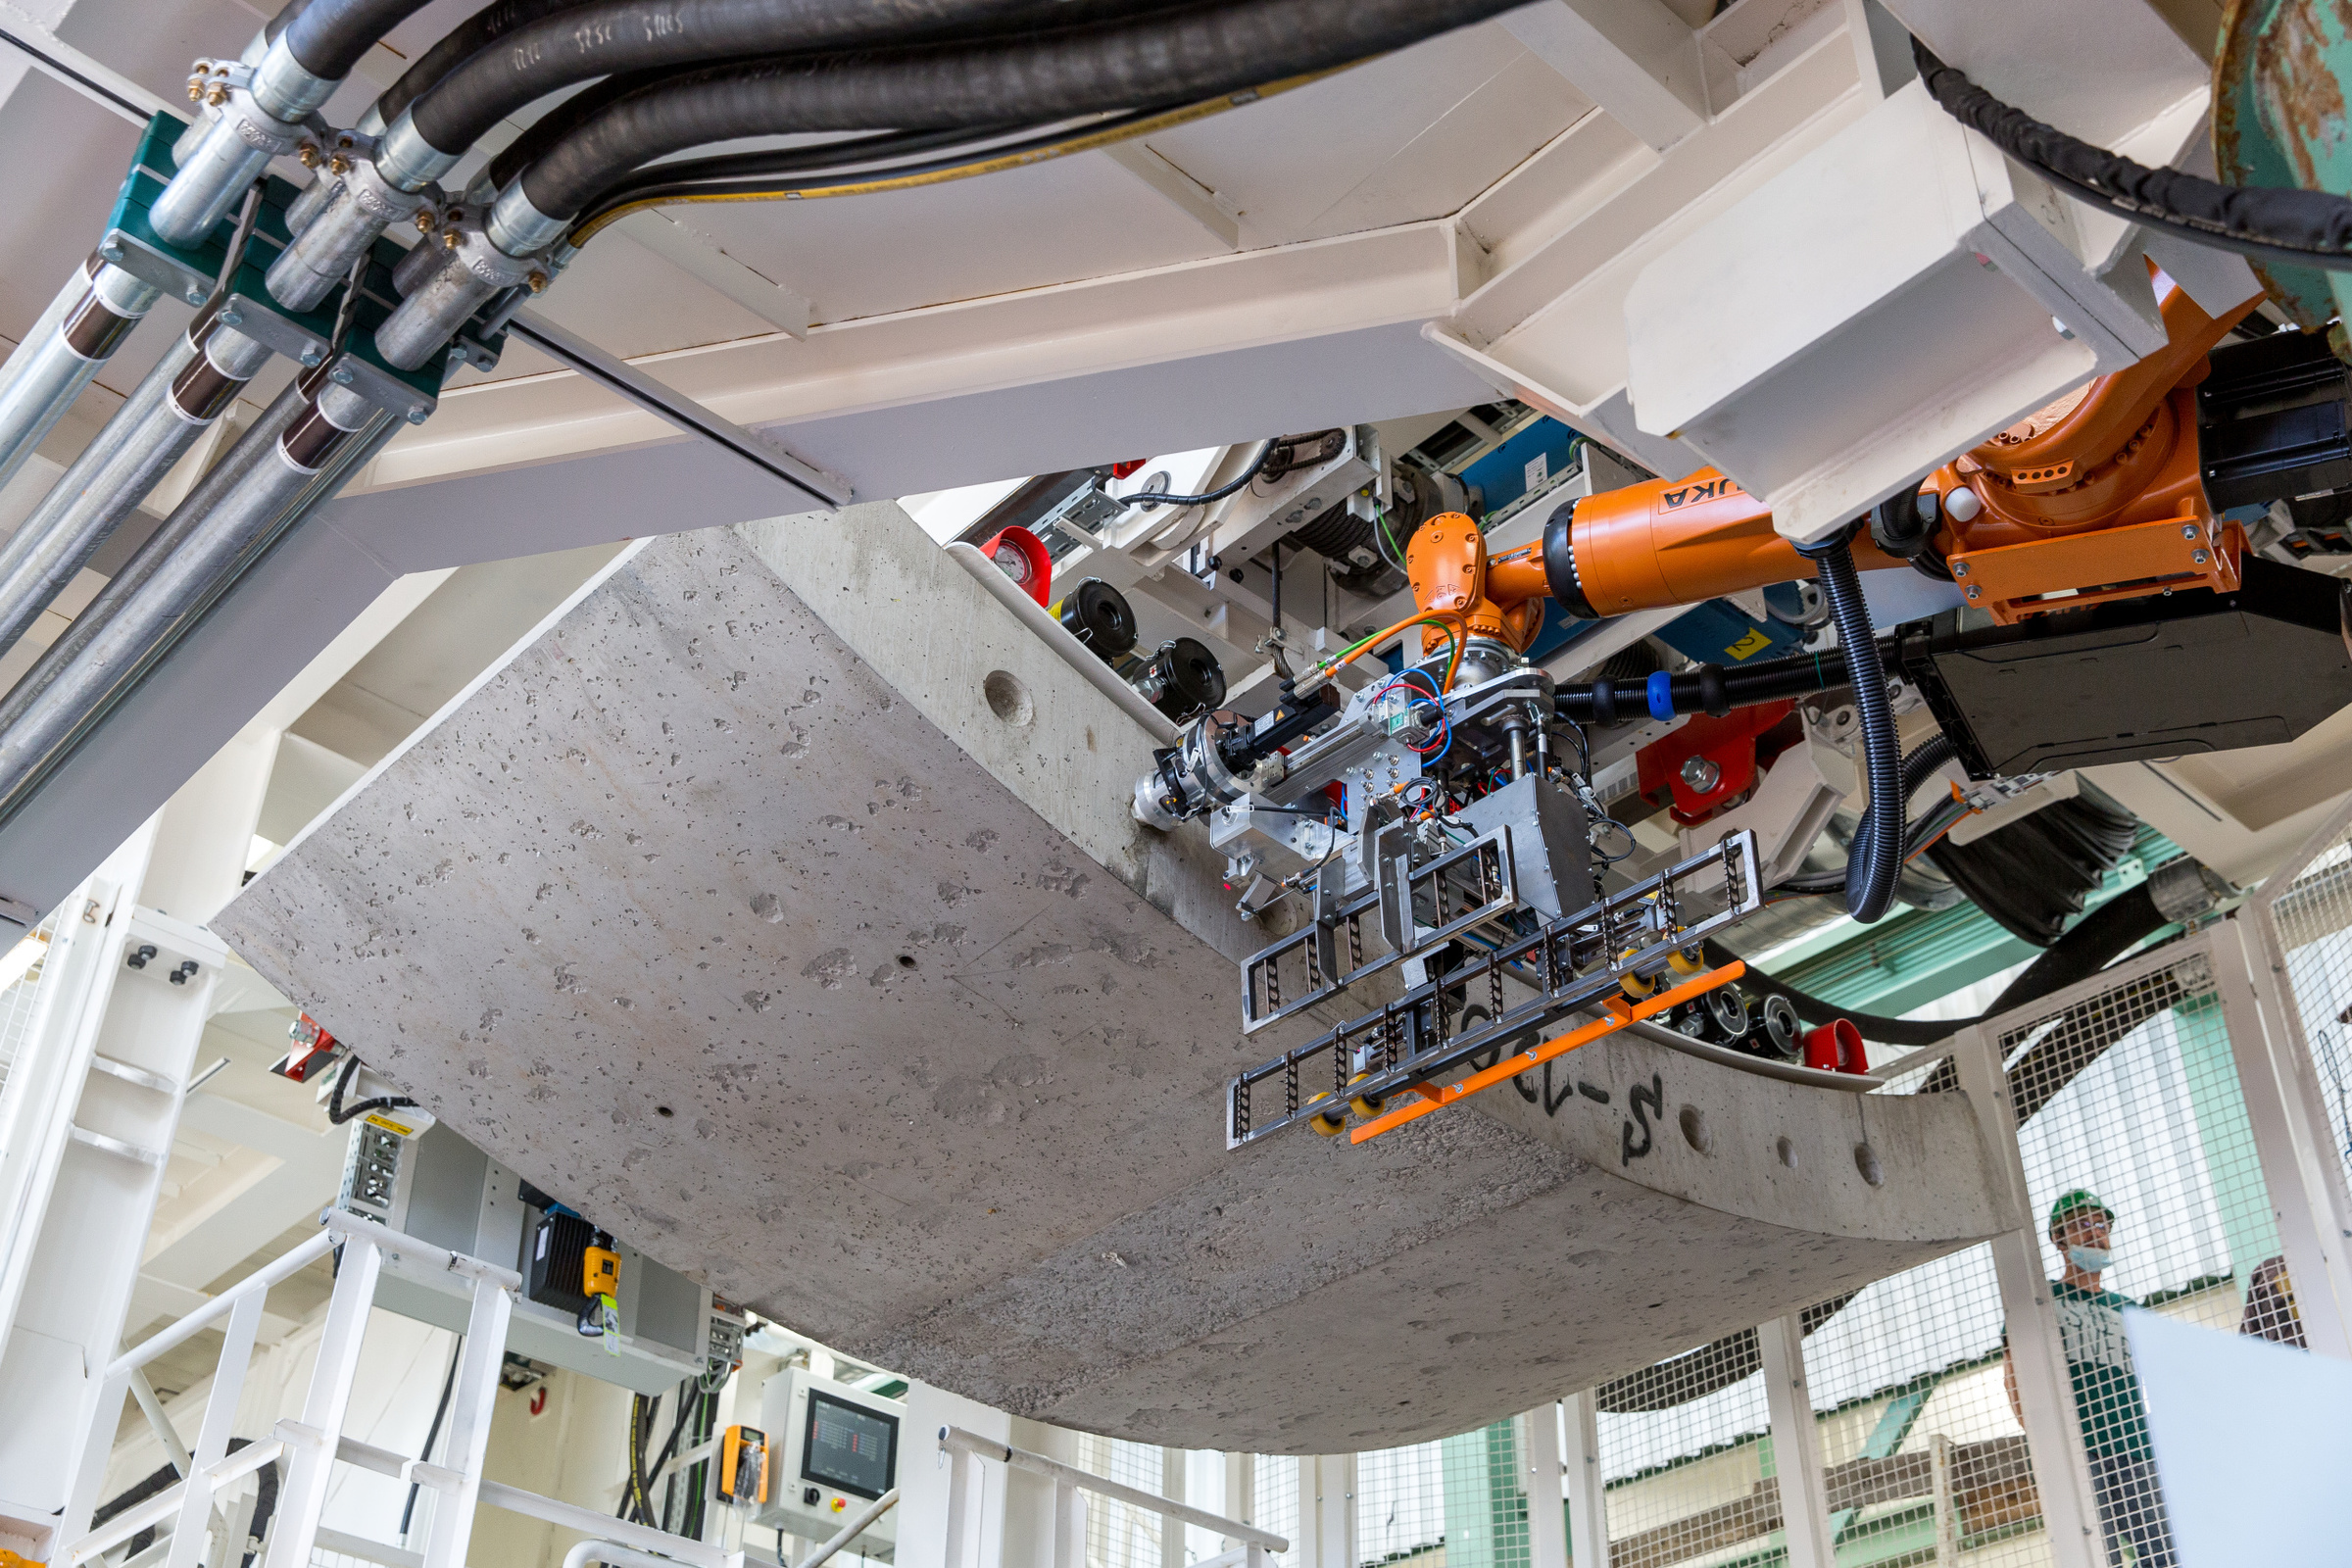 The Krokodyl robot that will work on the HS2 Chiltern tunnel boring machines